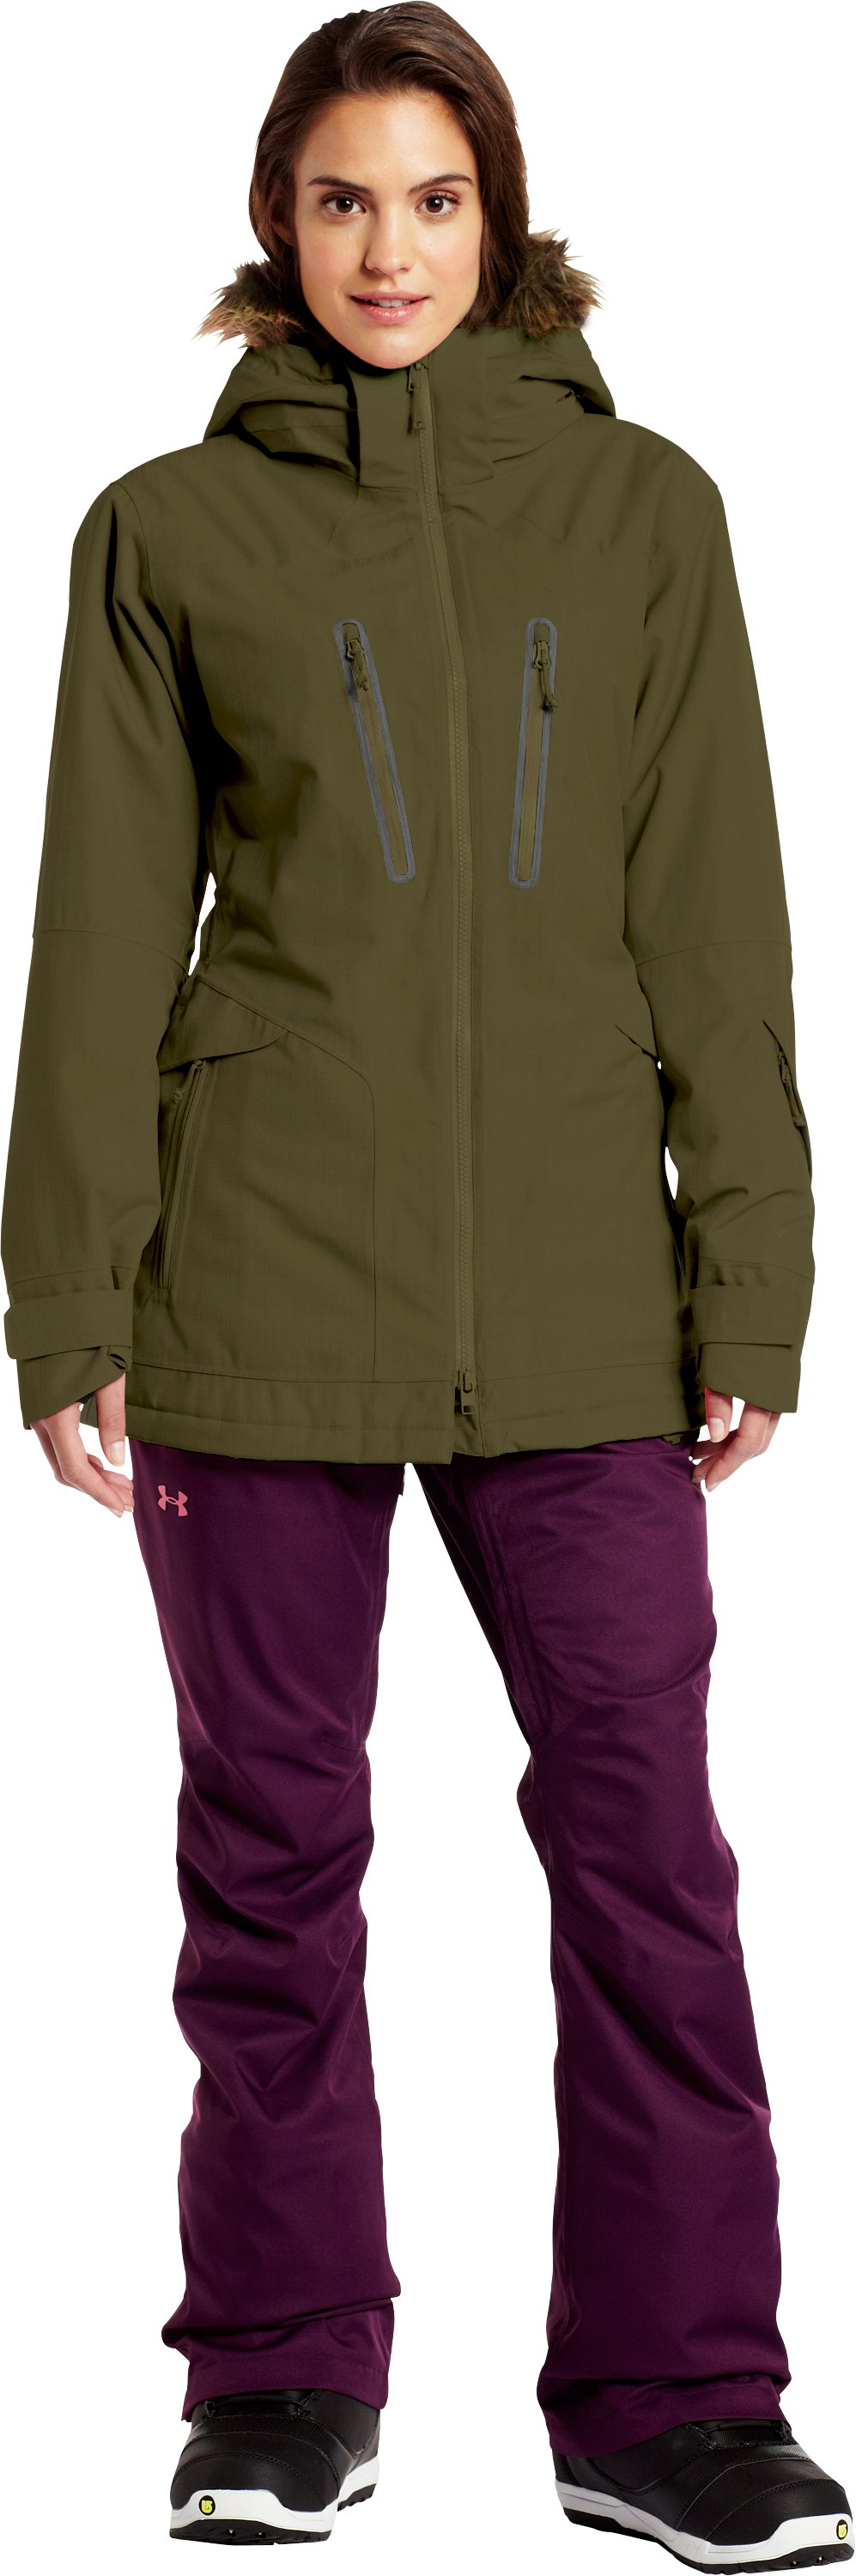 Women's ColdGear® Infrared Cleopatra Jacket, GREENHEAD, Front